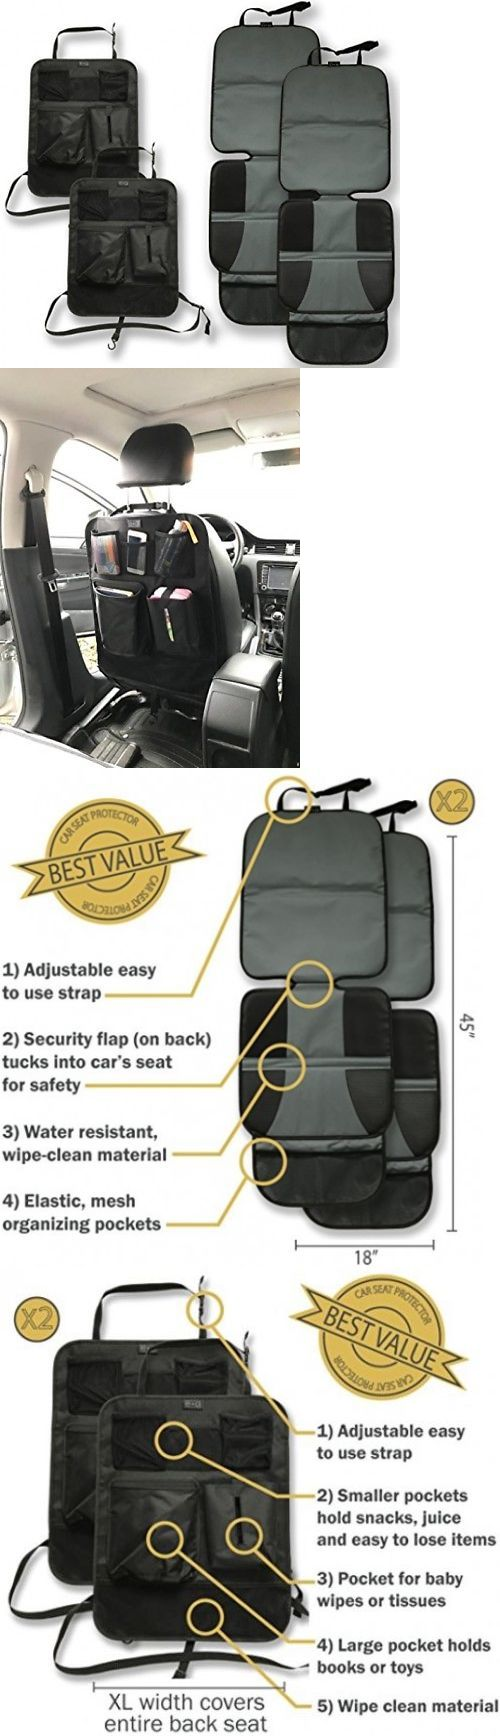 Car Seat Accessories 66693: Car Seat Protector And Kick Mat Car Back Seat Cover (4 Pack) - 2 Sets Of Car - -> BUY IT NOW ONLY: $47.61 on eBay!